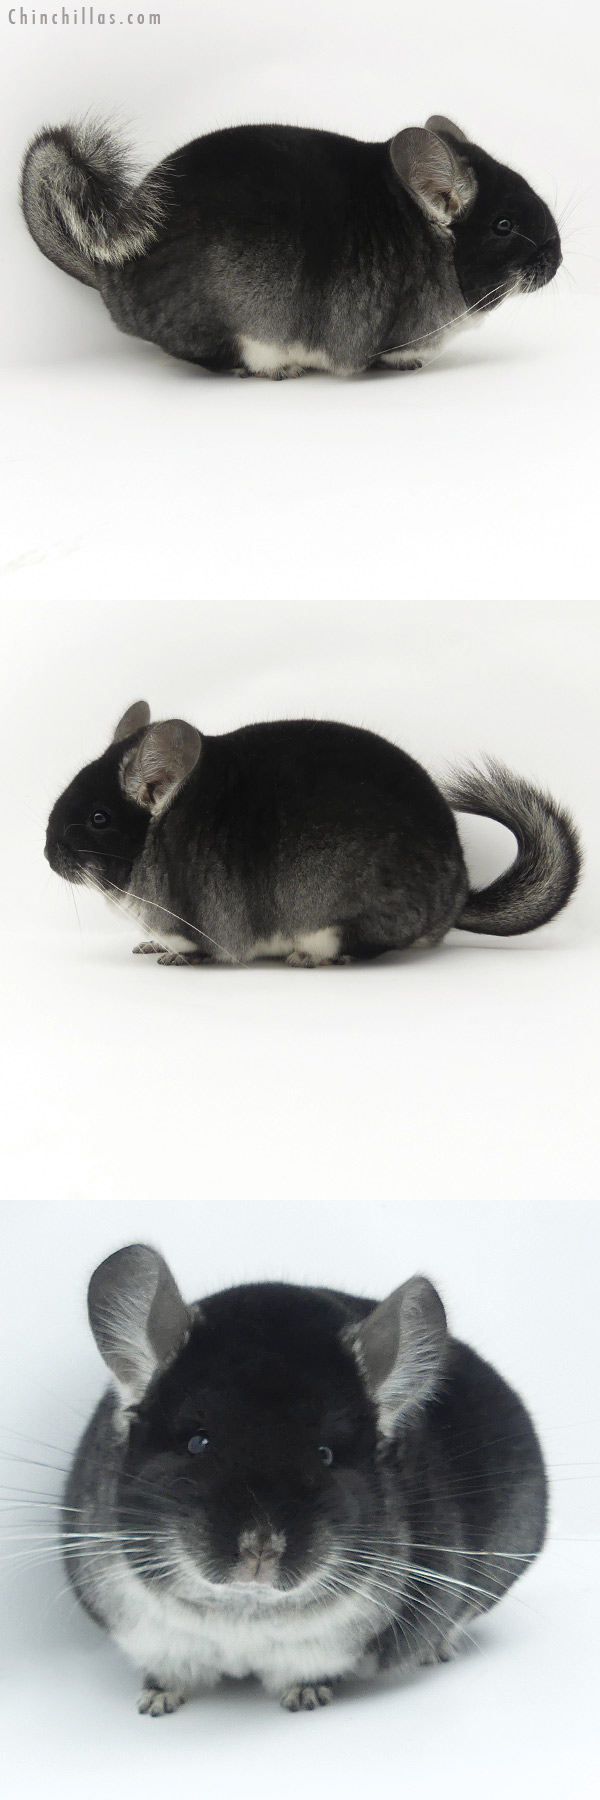 20009 Herd Improvement Quality Black Velvet Male Chinchilla